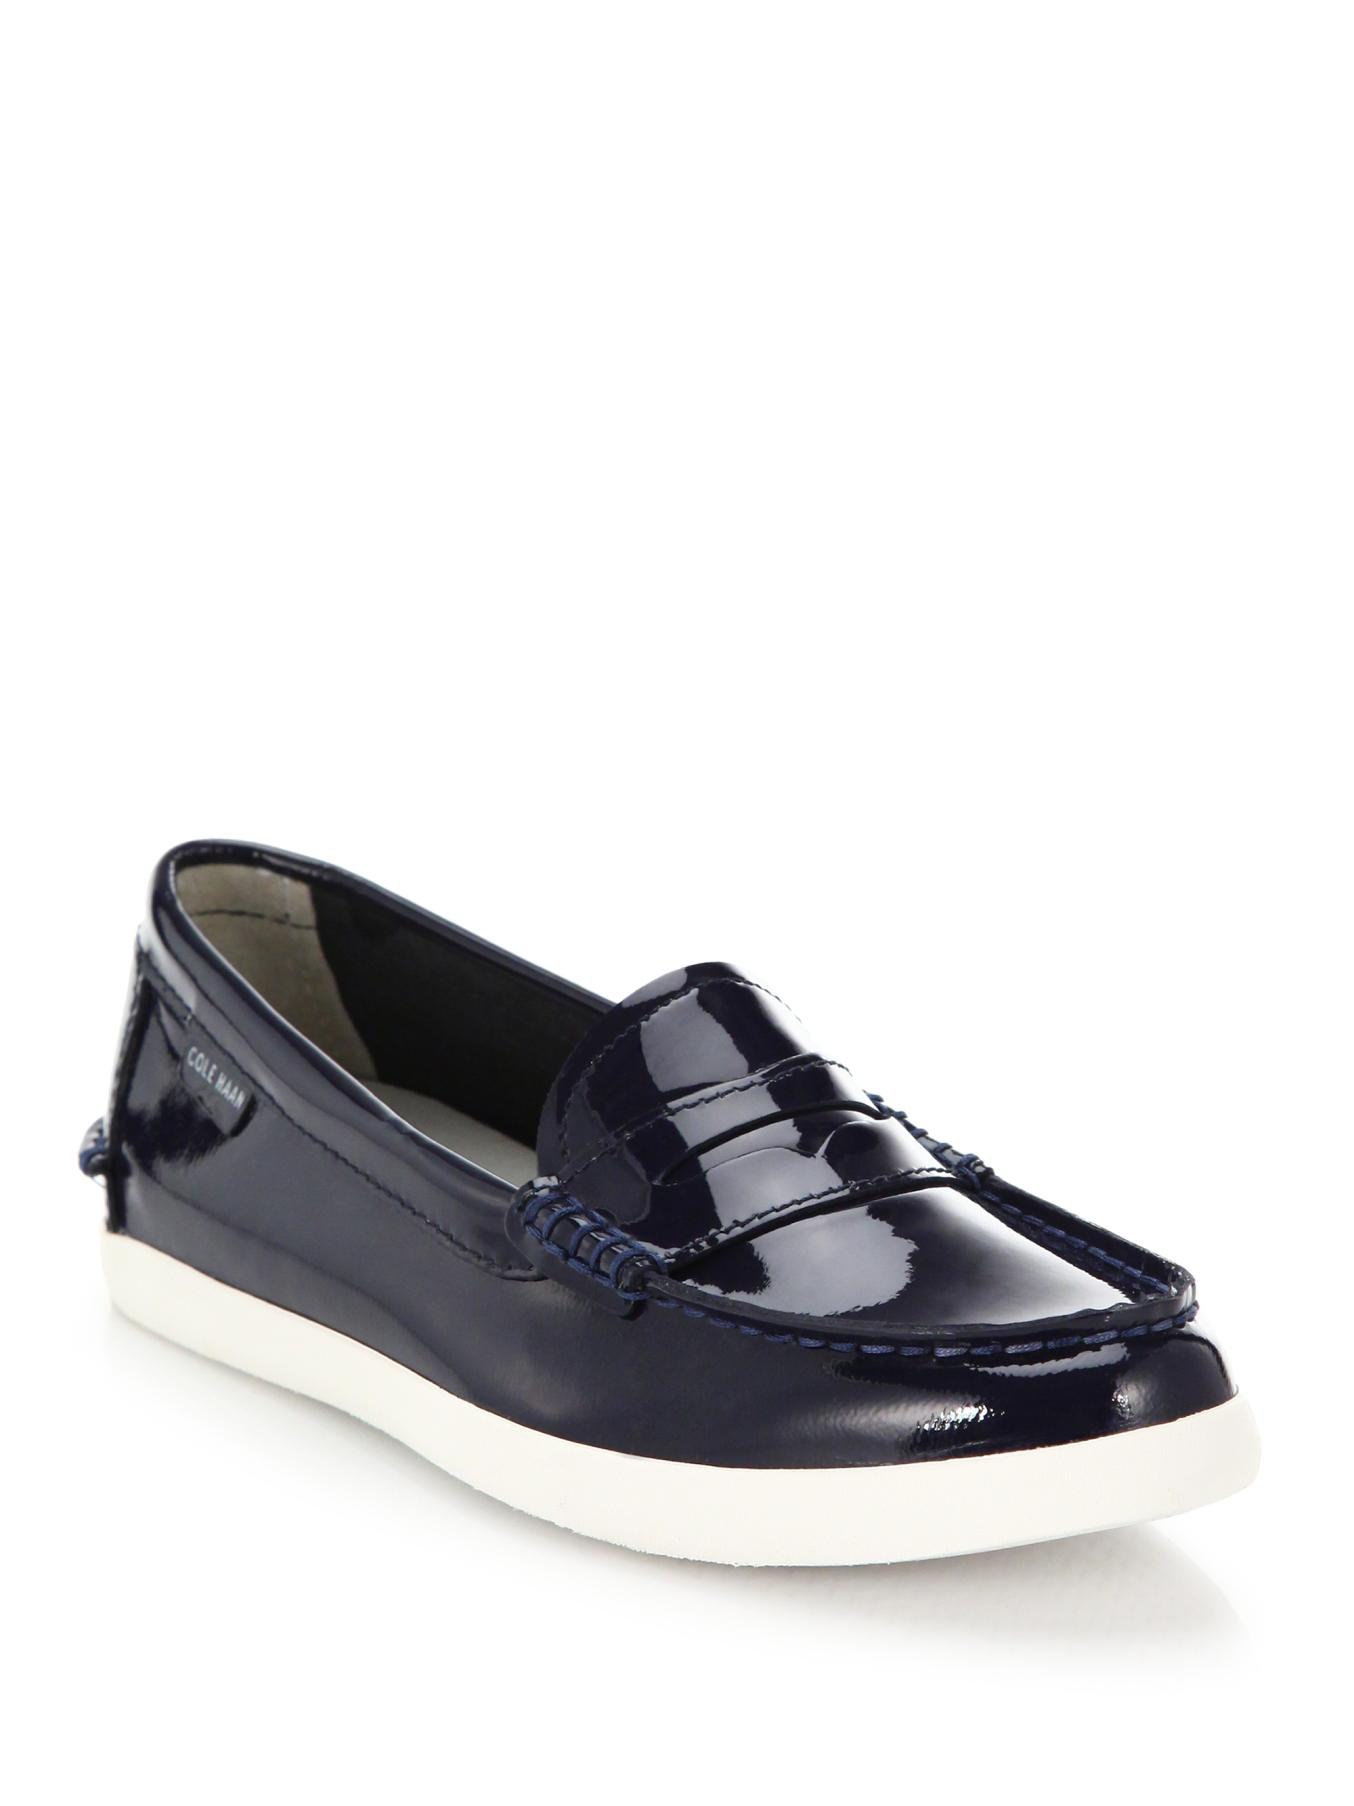 Cole Hann Leather Boat Shoes